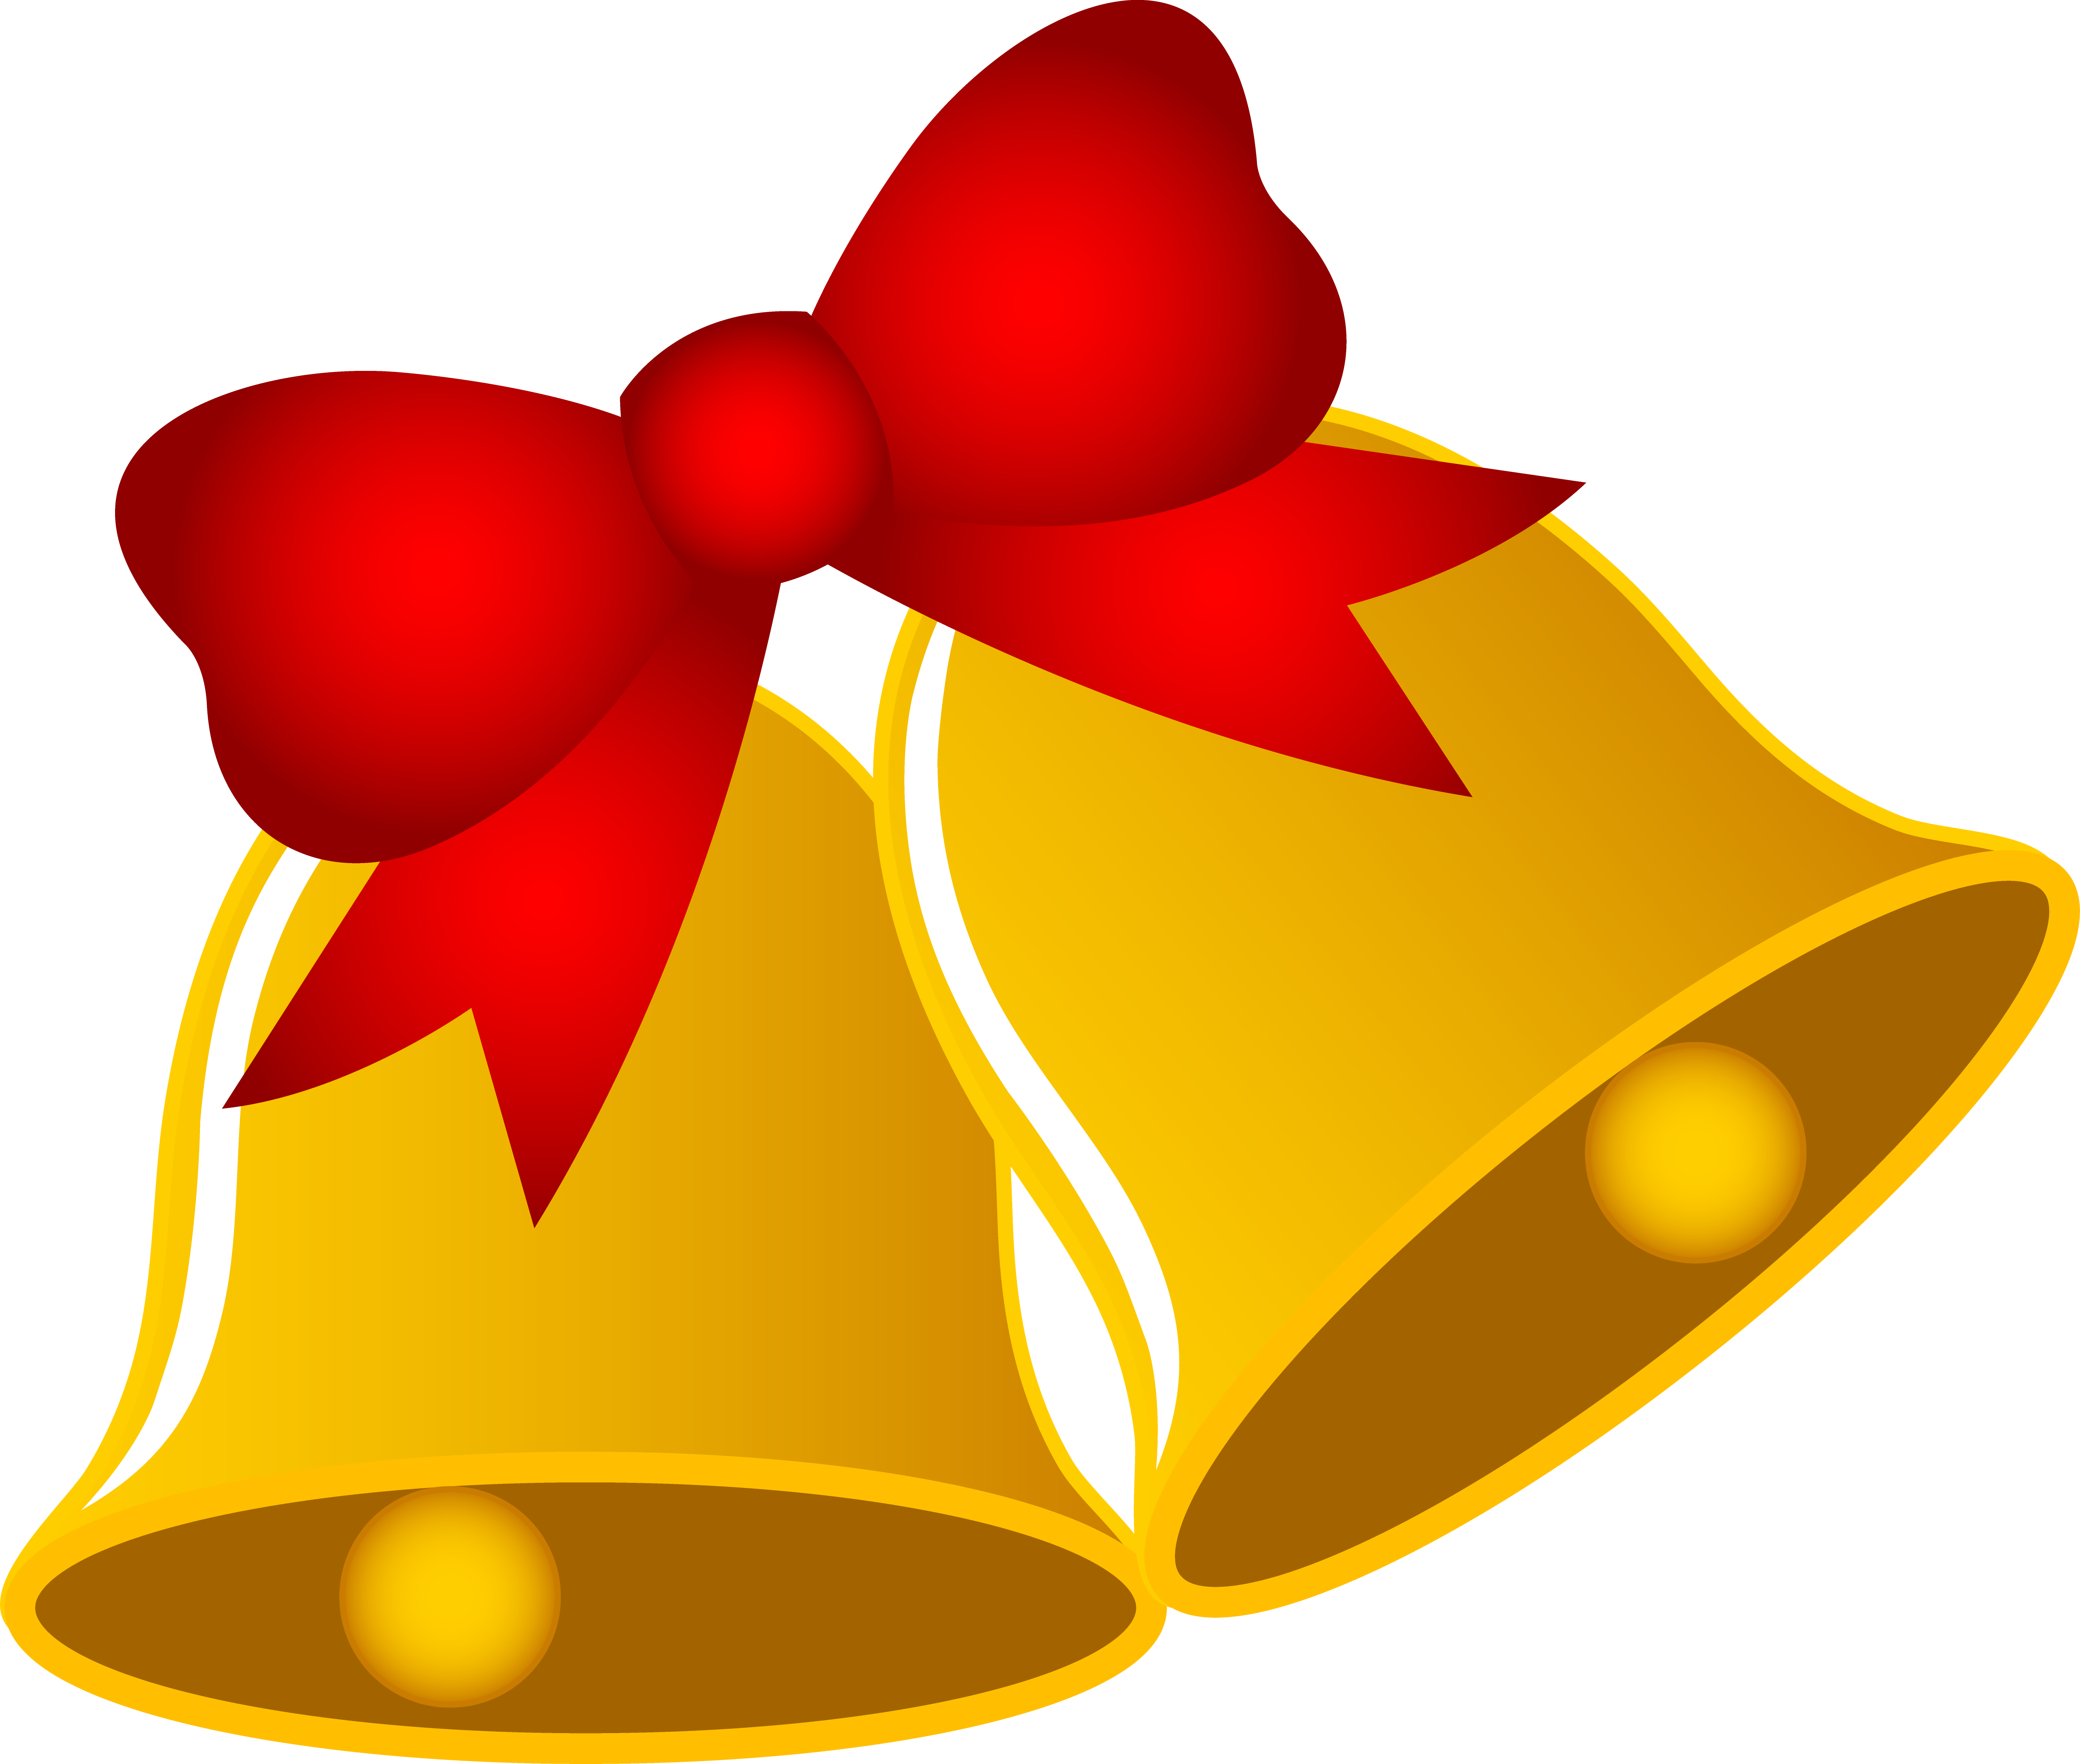 Christmas Clipart Images · Christmas Cl-christmas clipart images · christmas cliparts-4